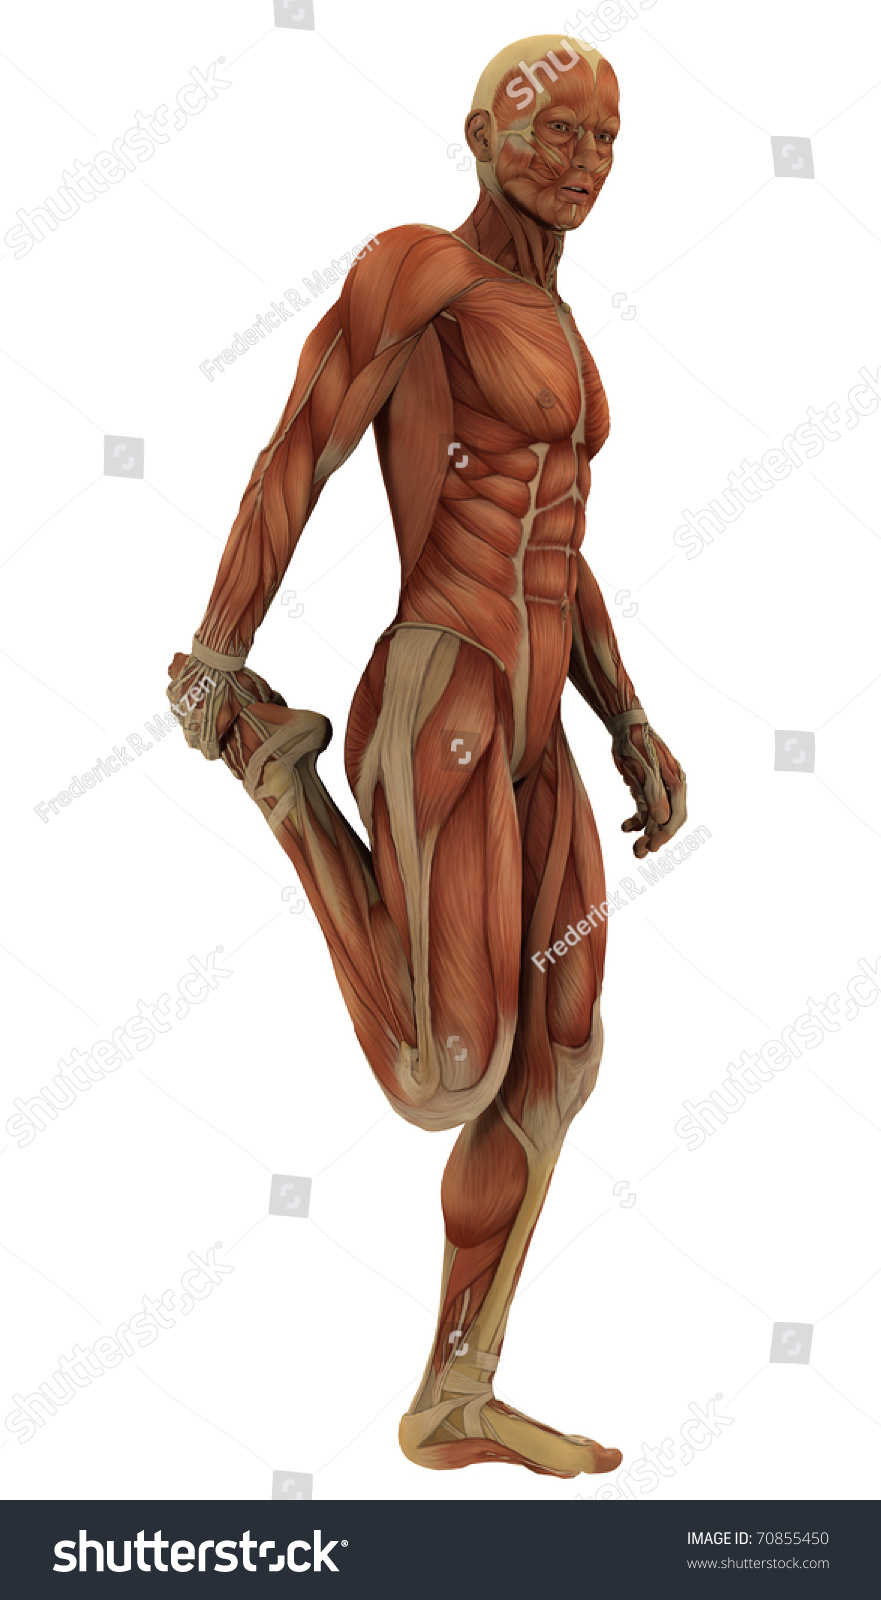 Royalty Free Stock Illustration Of Male Figure Sports Pose Without